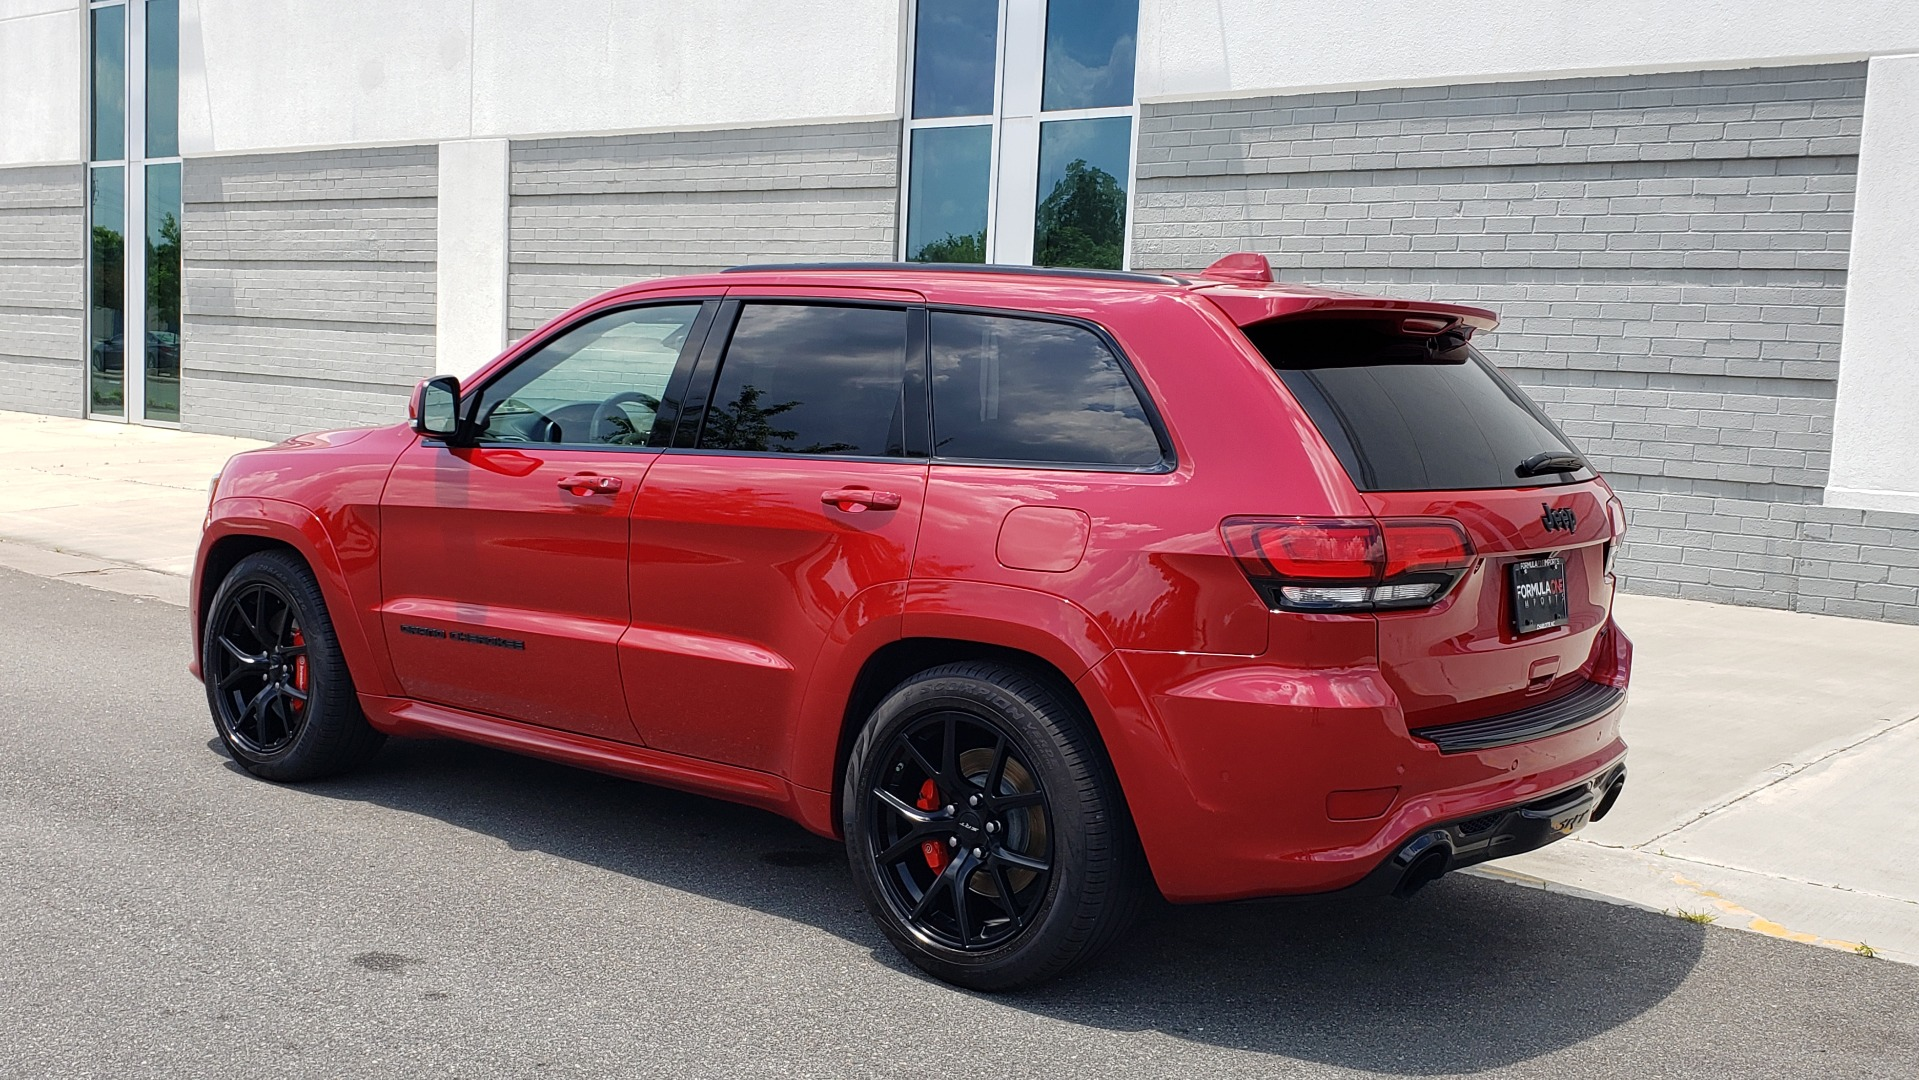 Used 2018 Jeep GRAND CHEROKEE SRT 4X4 / 6.4L HEMI (475HP) / NAV / SUNROOF / H/K SND / REARVIEW for sale Sold at Formula Imports in Charlotte NC 28227 4